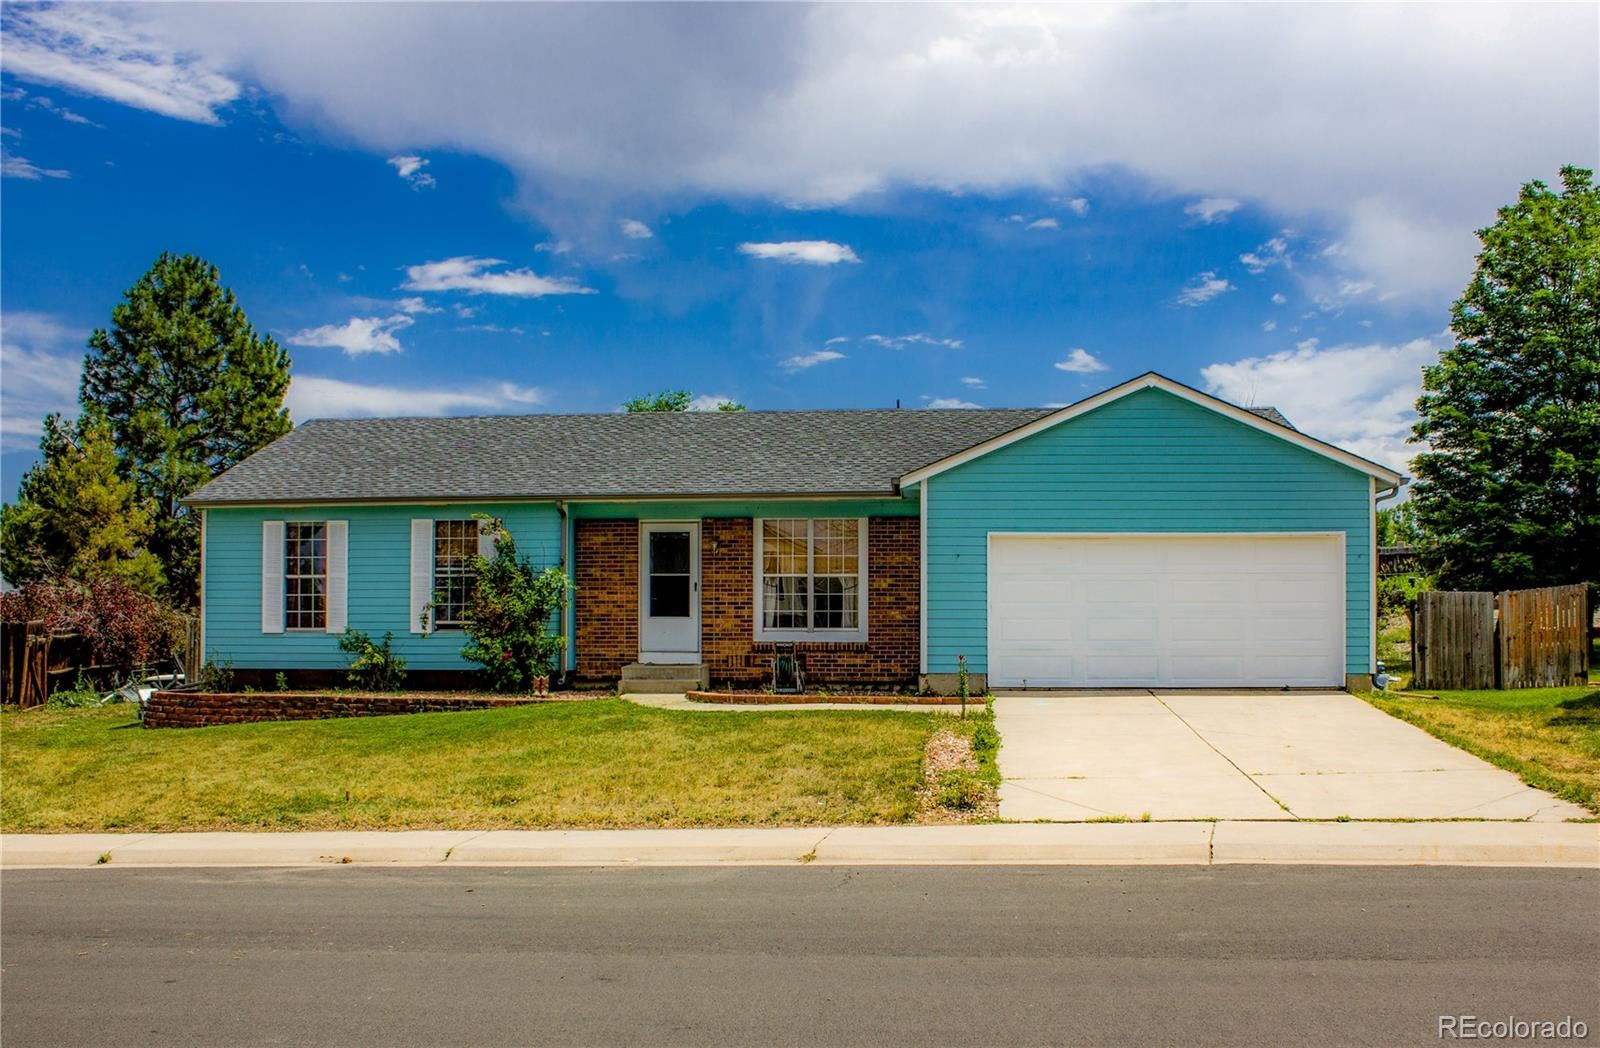 9036 W 95th Avenue, Westminster, CO 80021 - #: 7693953